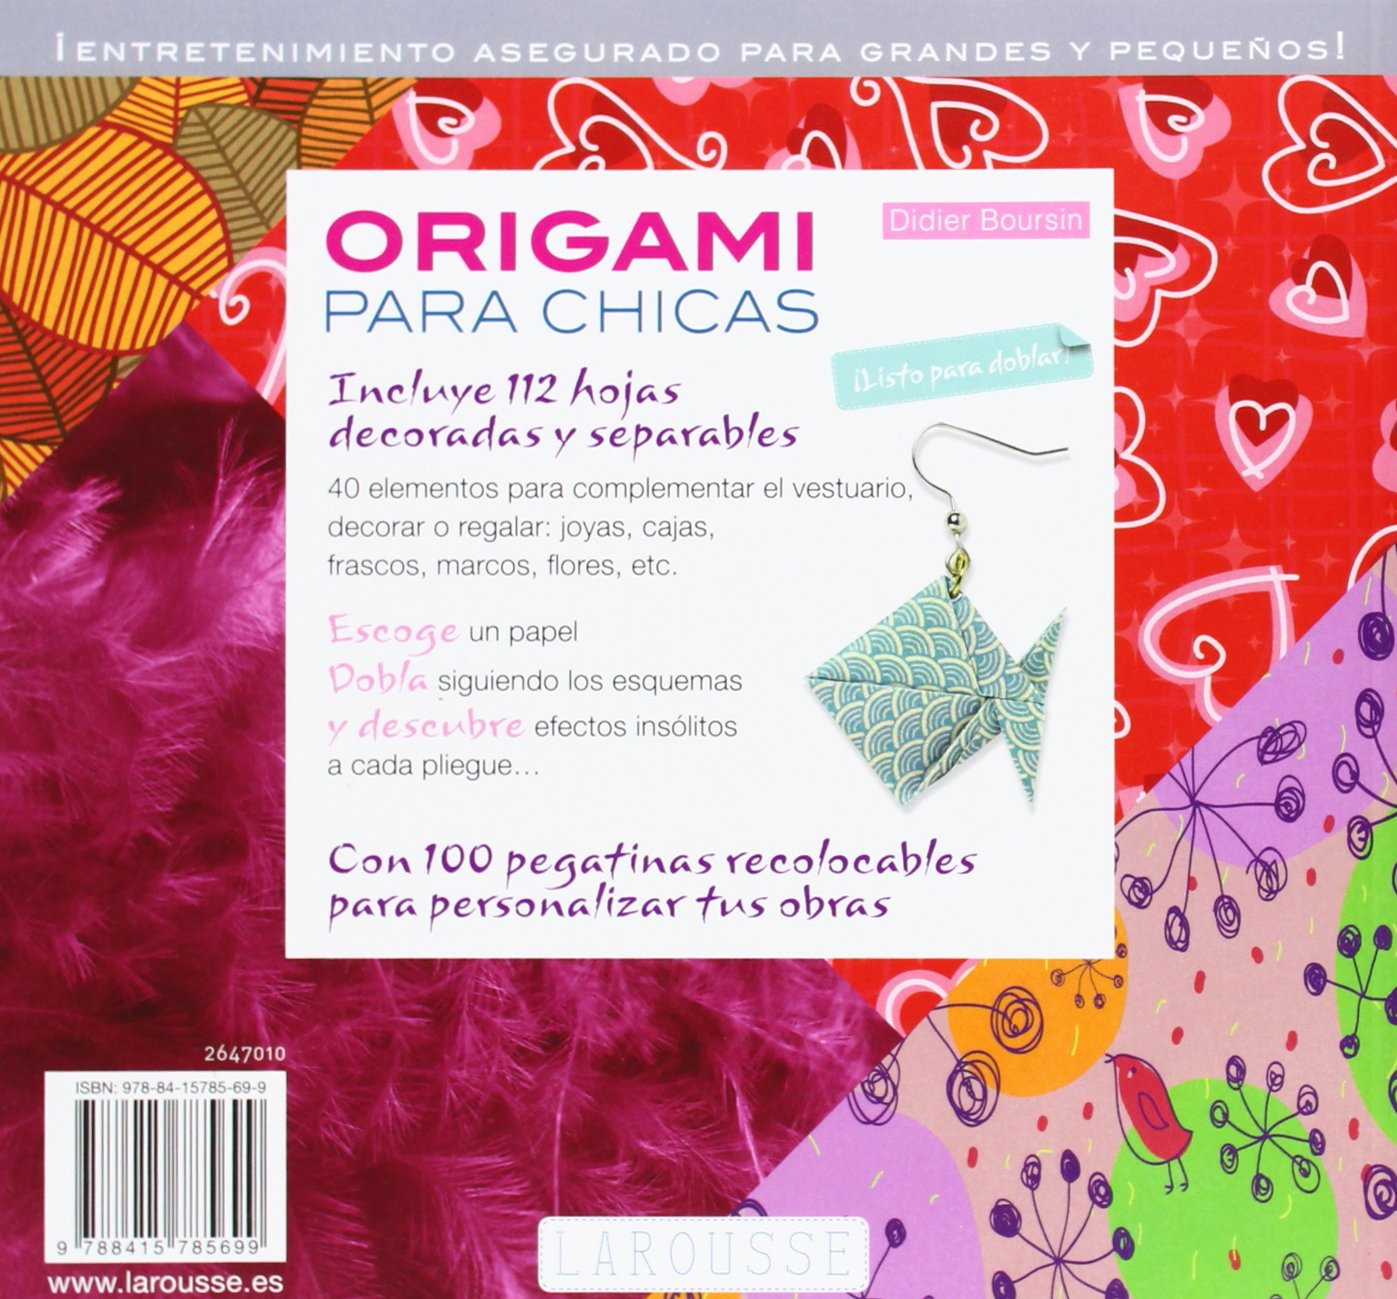 Origami para chicas / Origami for Girls (Spanish Edition): Didier Boursin, Francesc Reyes Camps: 9788415785699: Amazon.com: Books